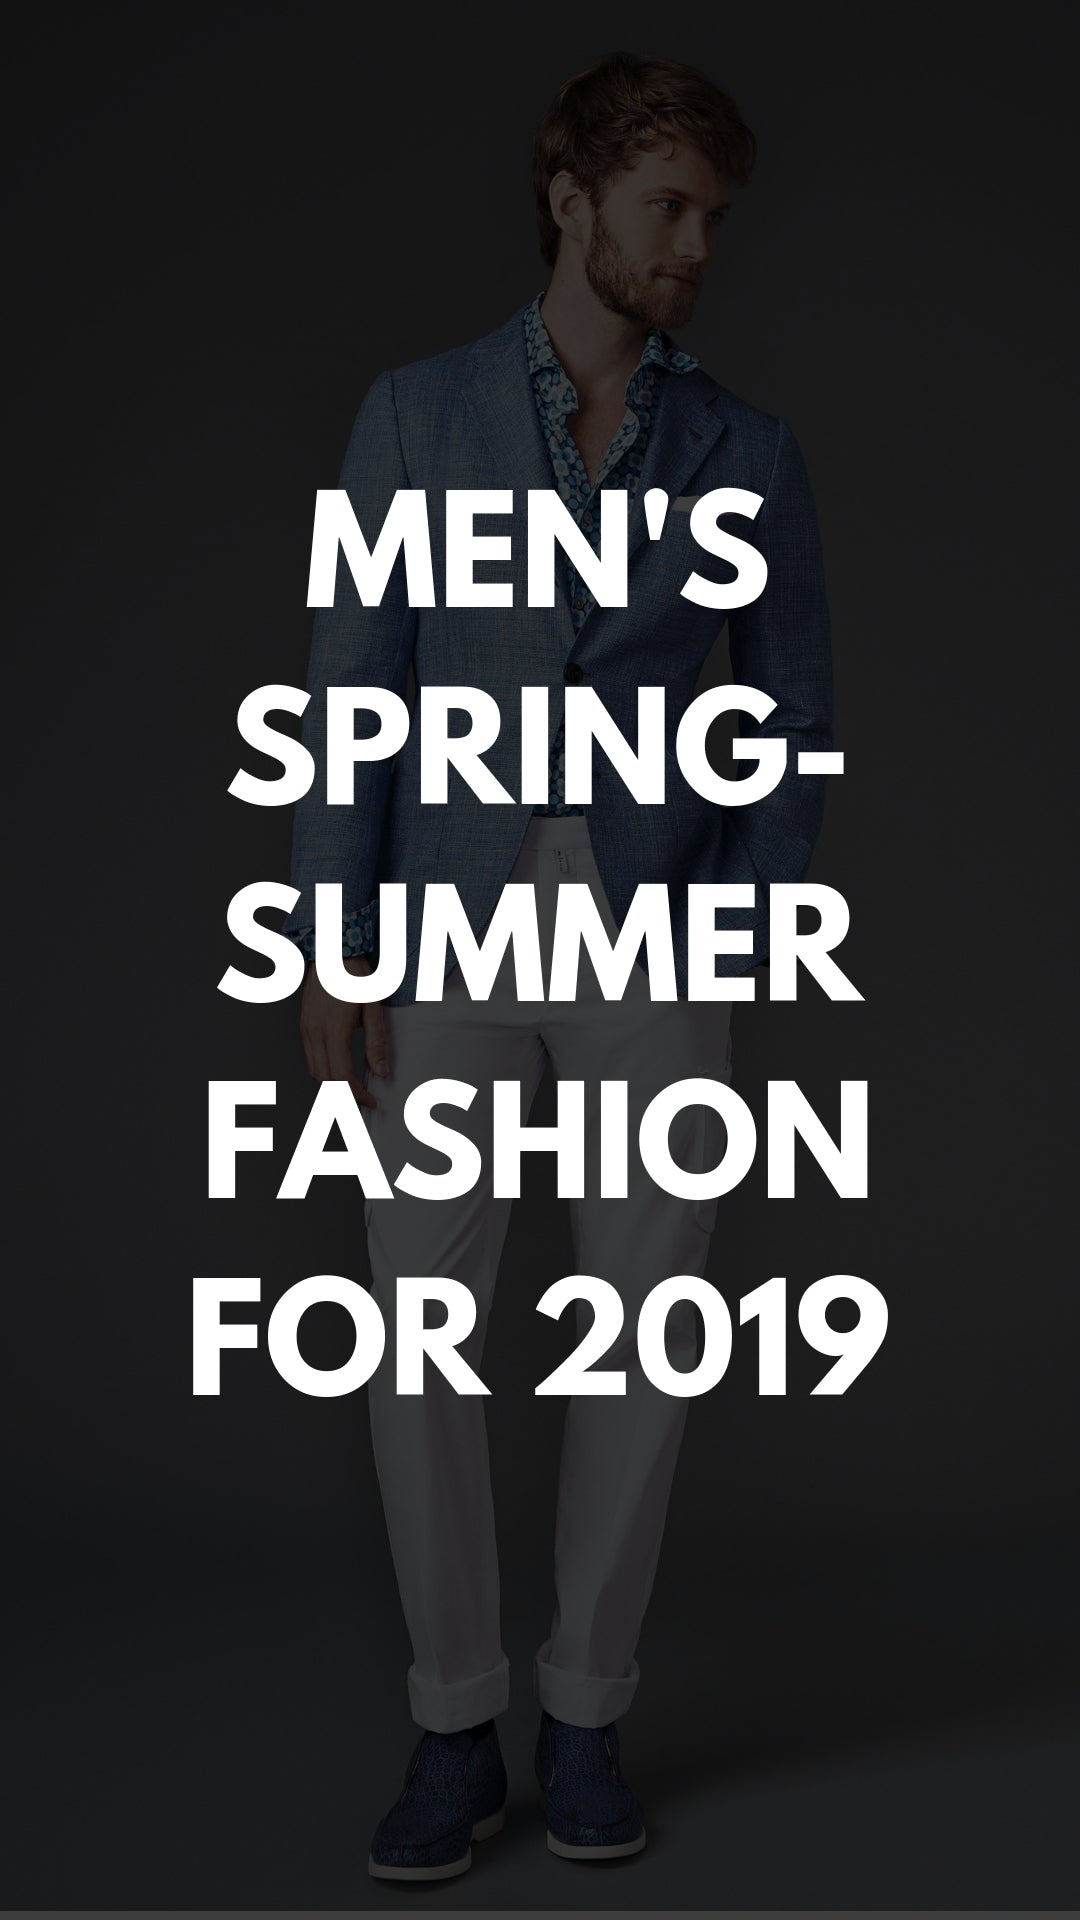 Men's Spring-Summer Fashion For 2019